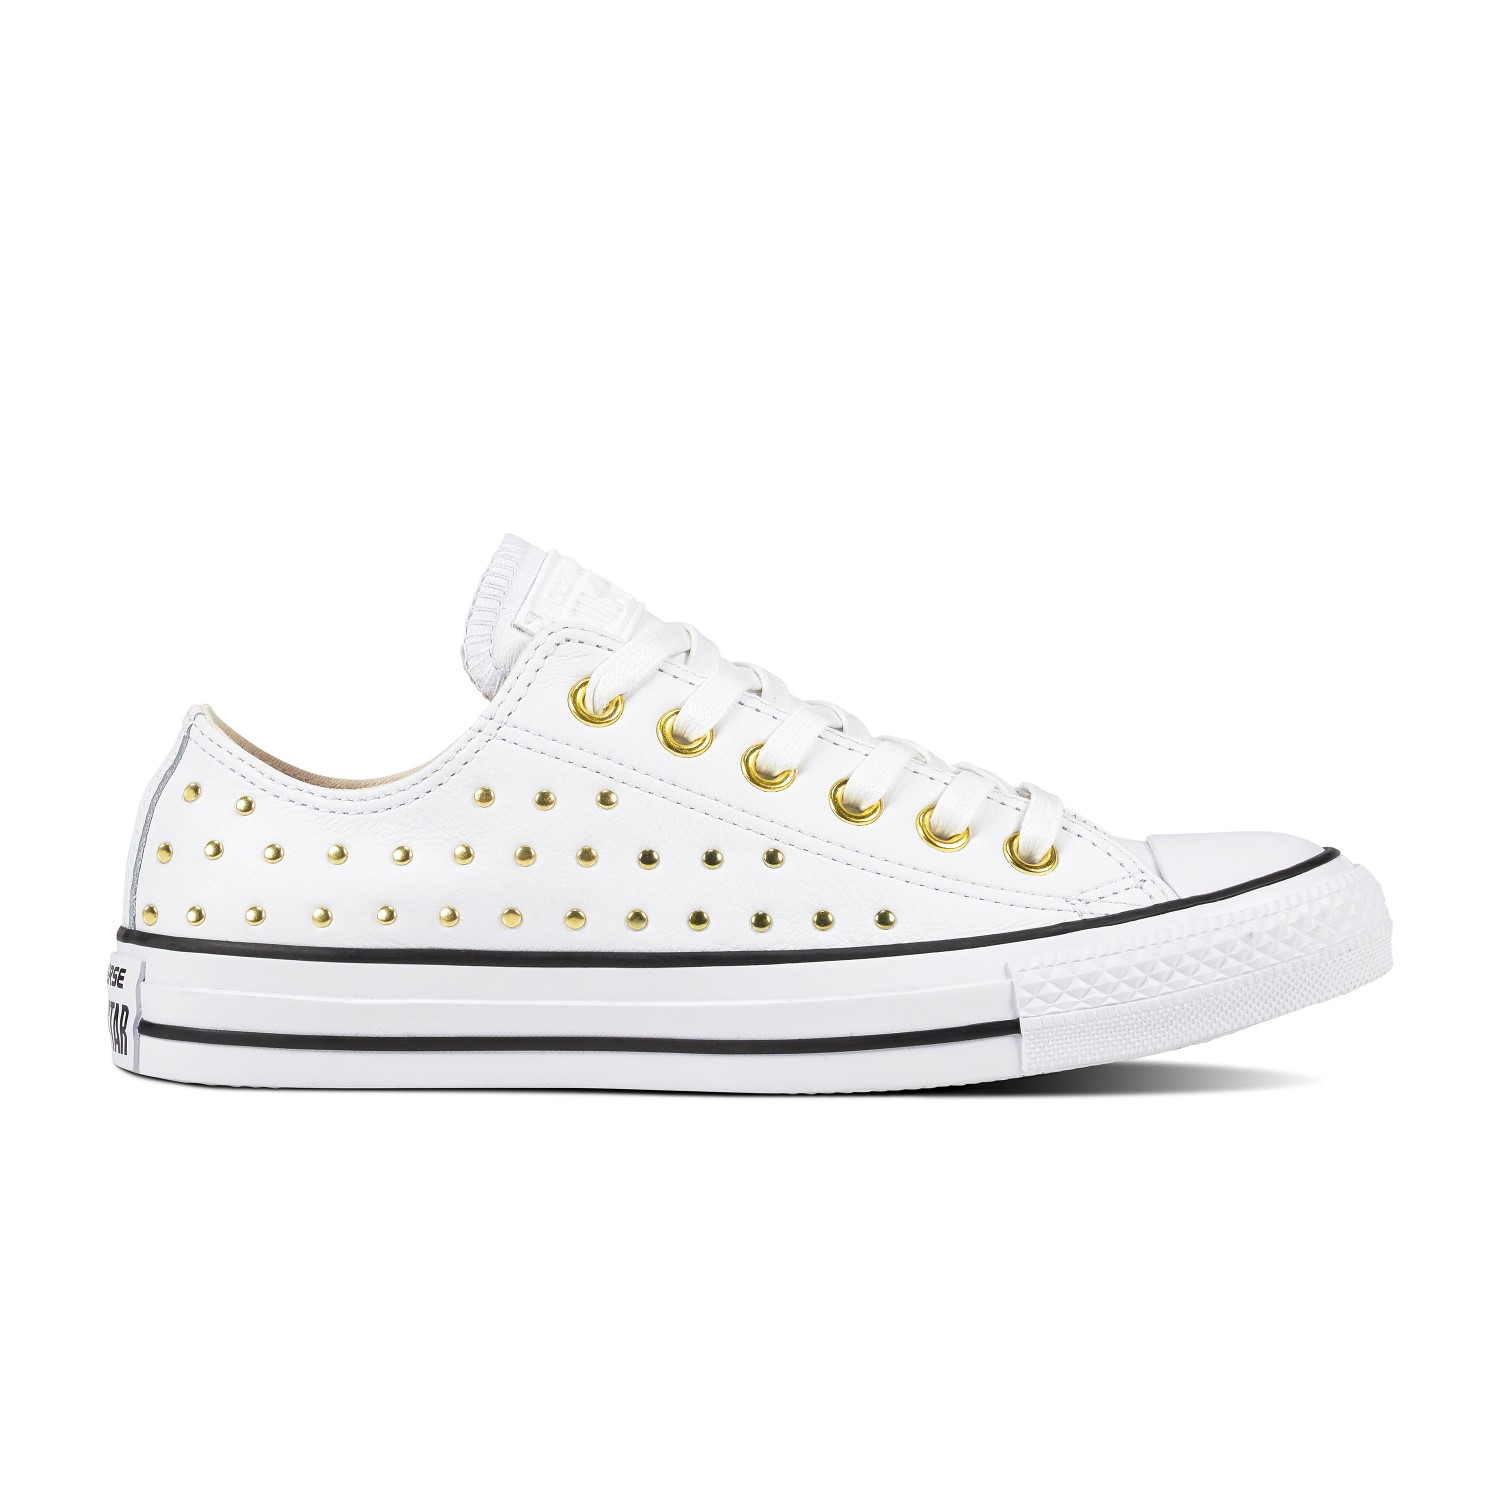 503caf11794717 Converse white sneakers with Chuck Taylor All Star Ox White   Gold studs